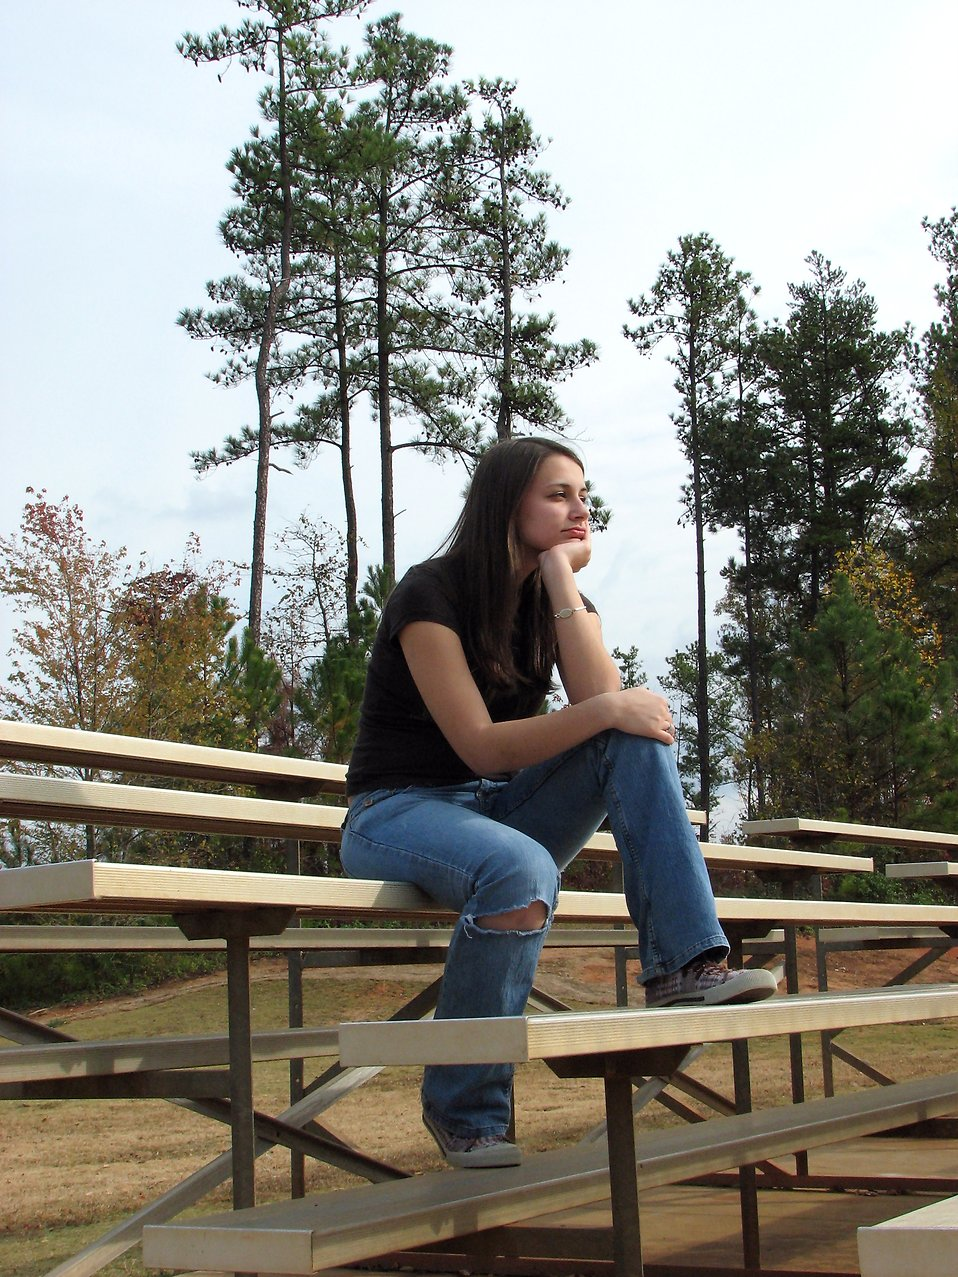 A teenage girl sitting on bleachers : Free Stock Photo